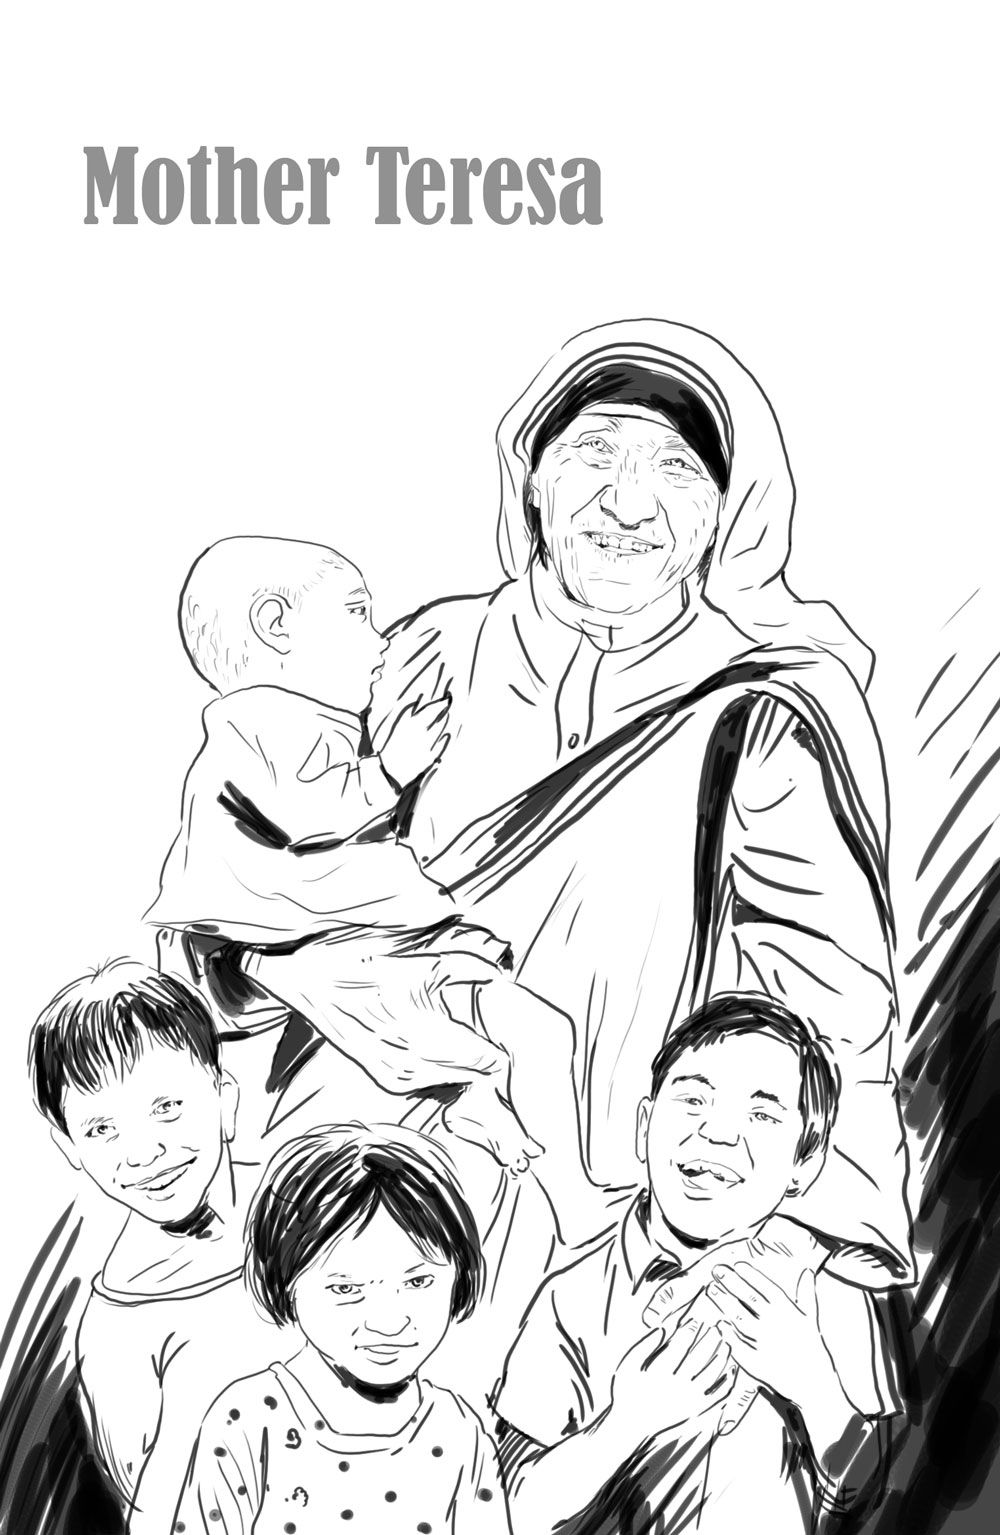 bpblogspotcom mother teresa with children coloring page